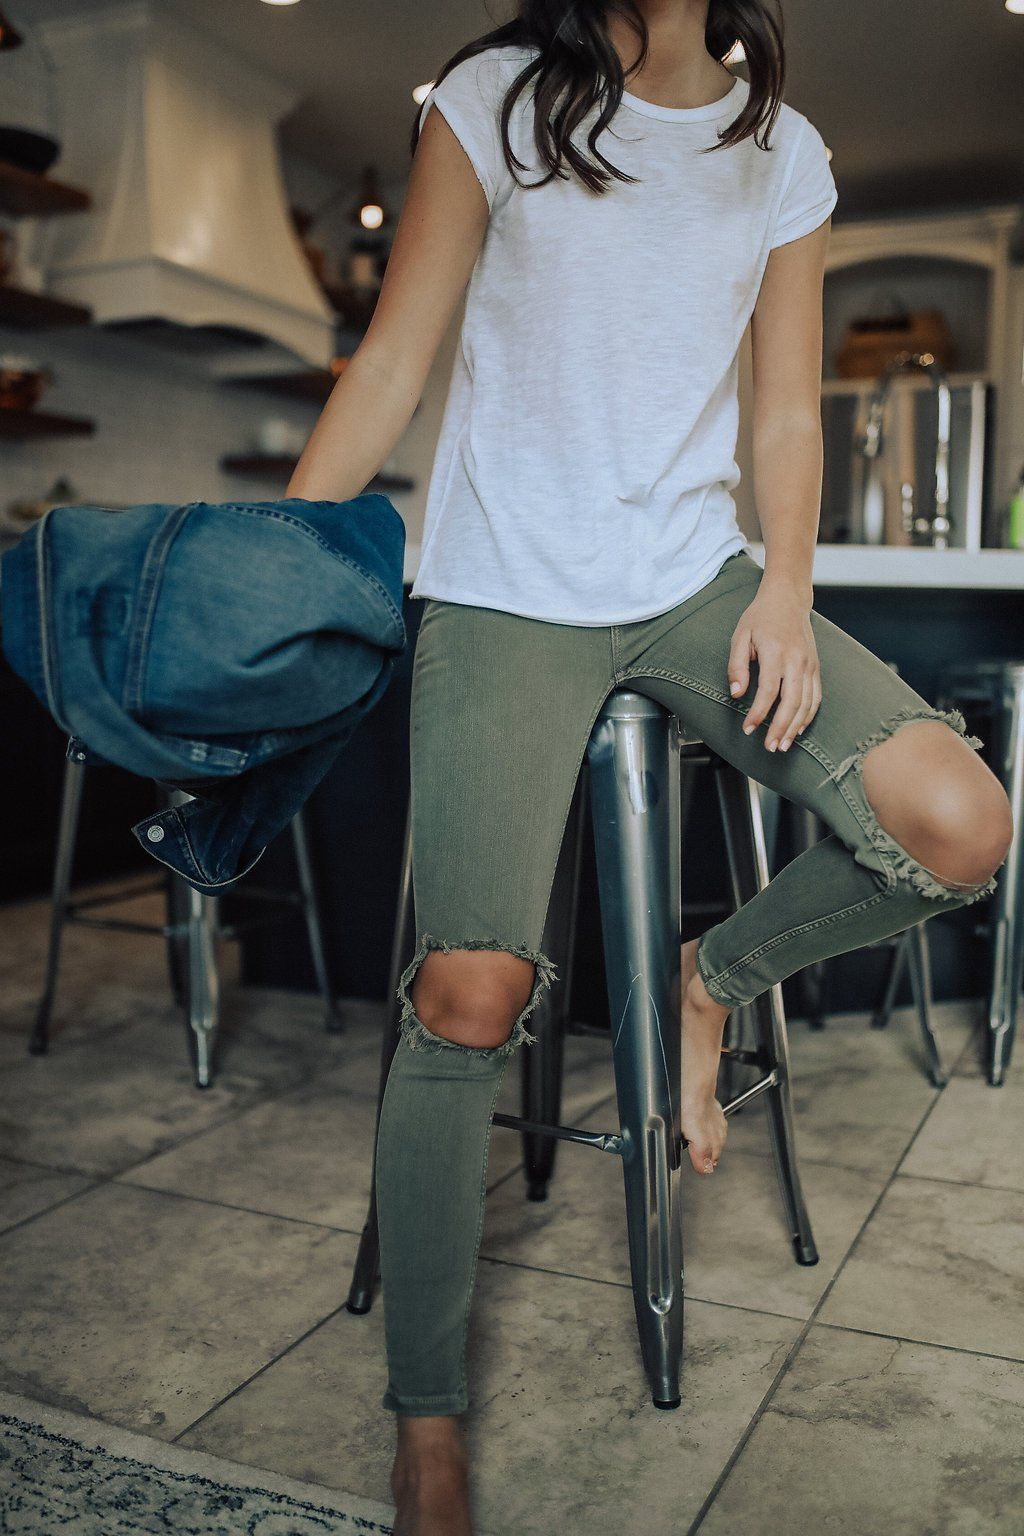 09d8bdf42 Free People High Rise Busted Skinny Jeans in Moss | |style-ish ...